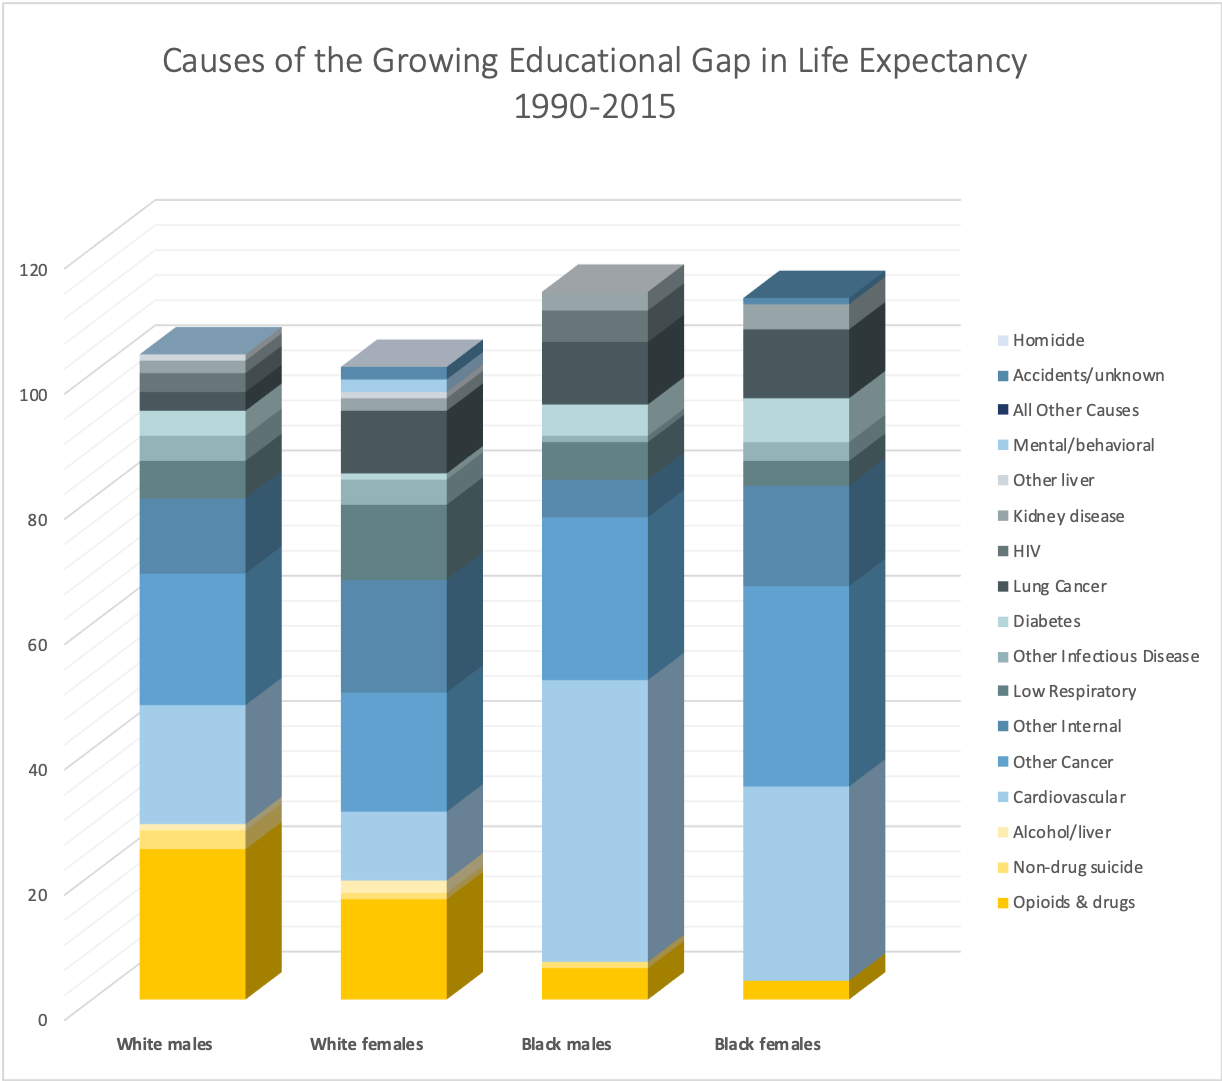 Causes of the Growing Educational Gap in Life Expectancy